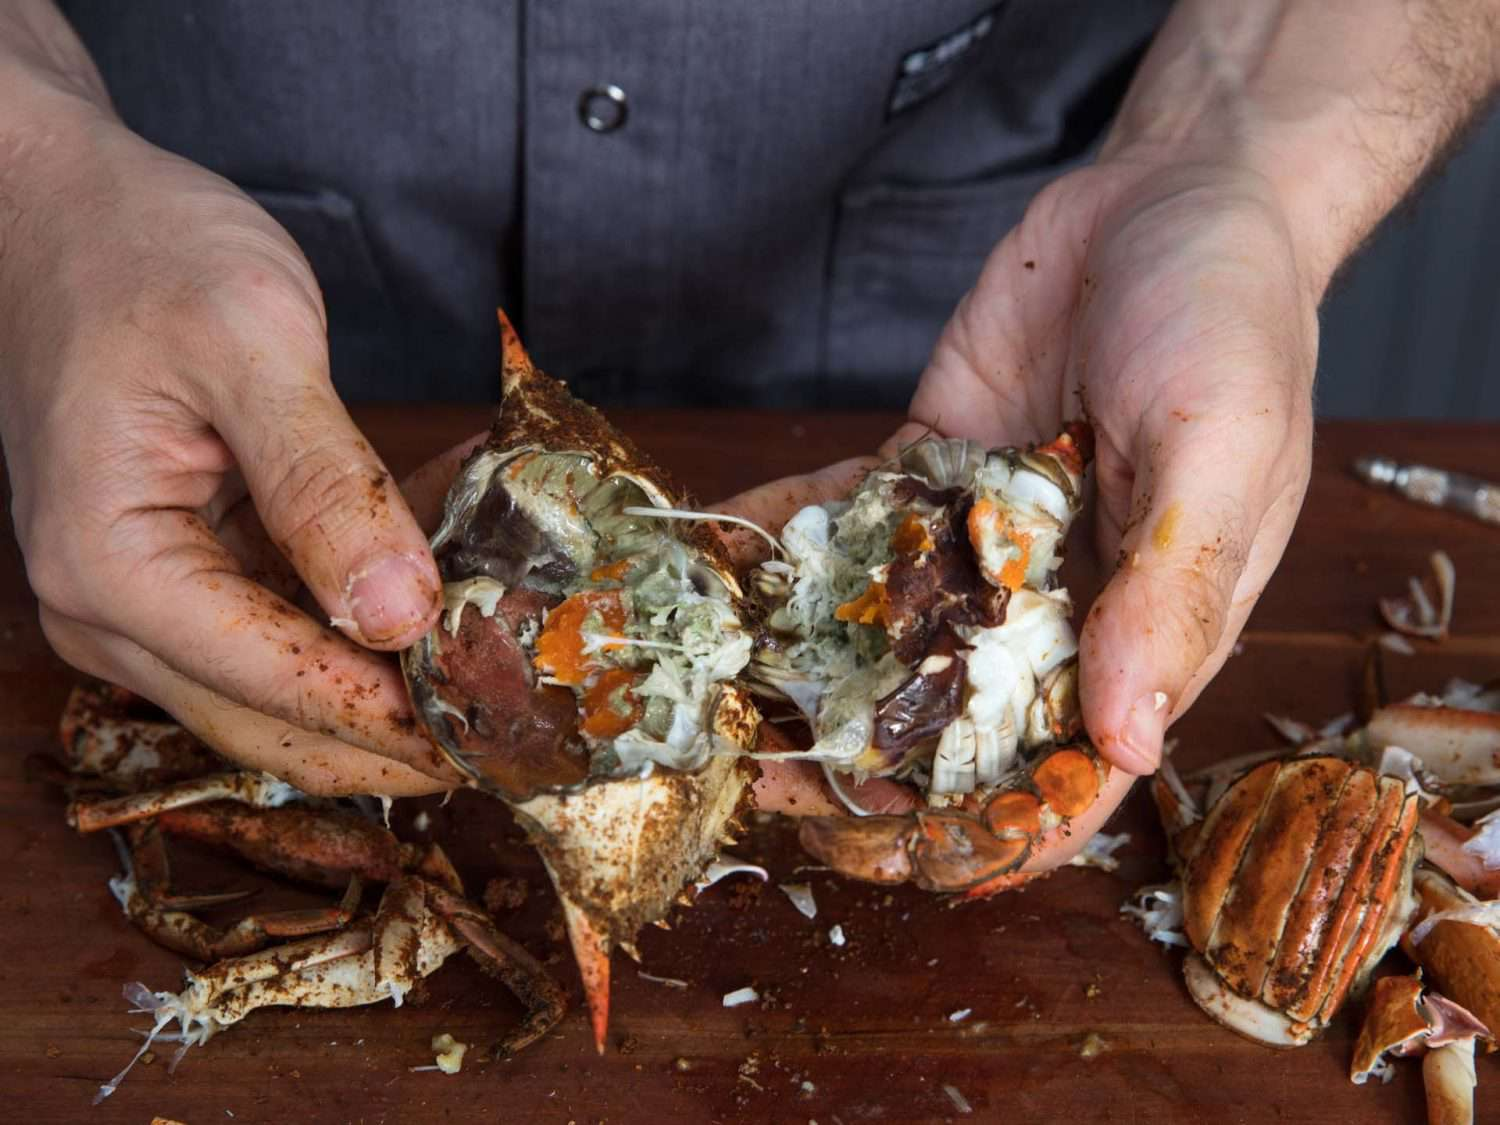 Pulling the body of a cooked crab in half to expose the innards